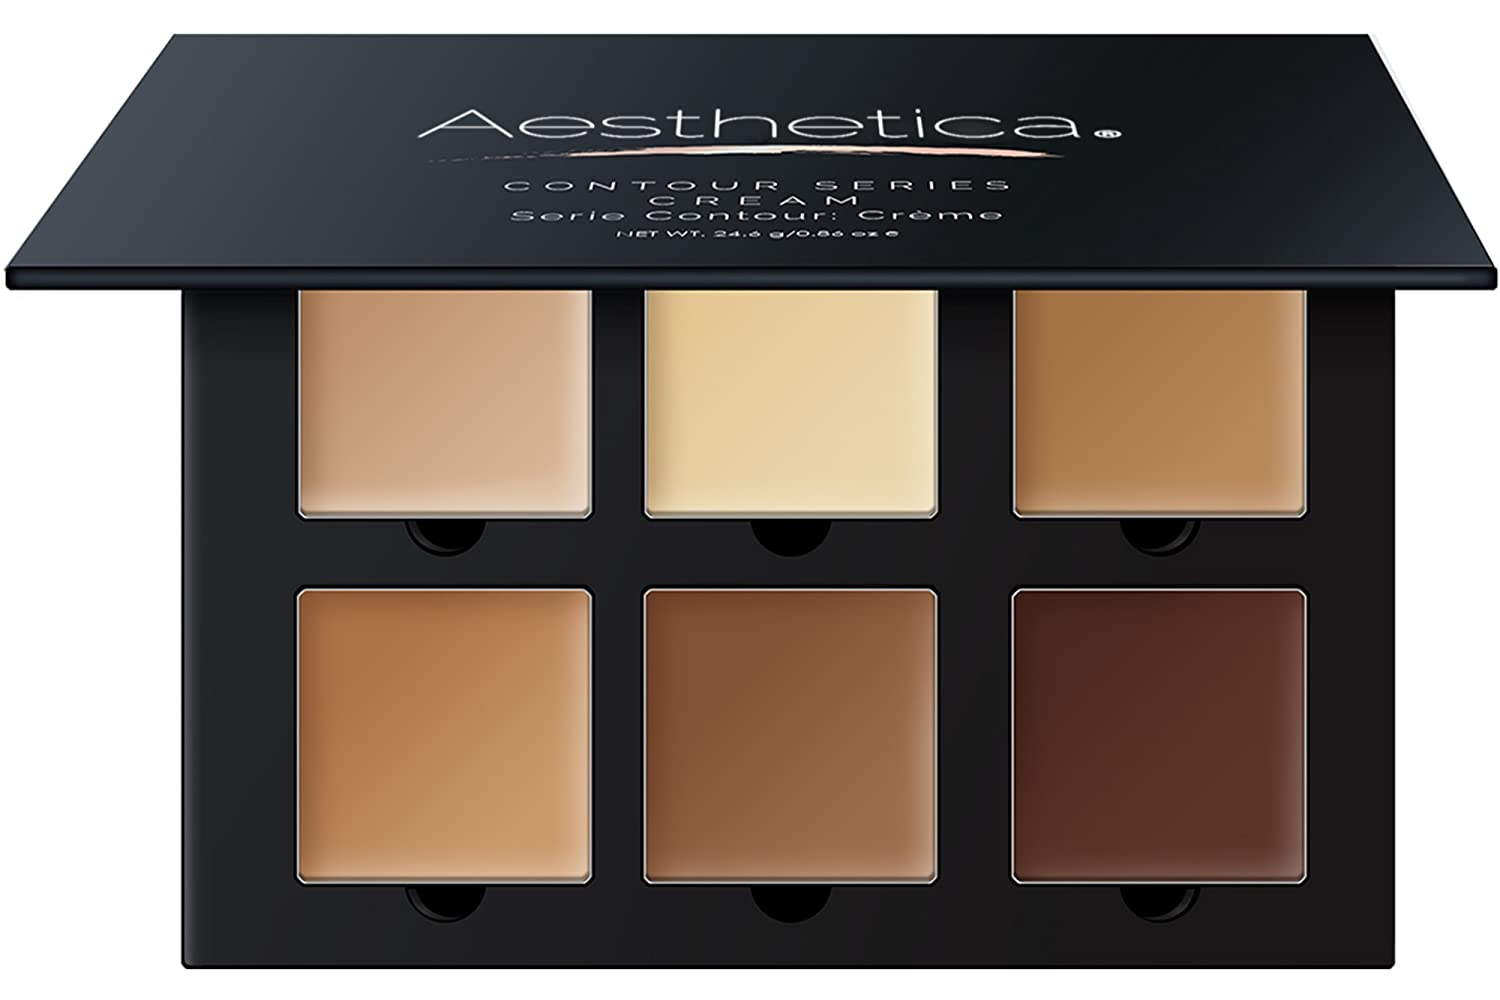 Aesthetica Cosmetics Cream Contour and Highlighting Makeup Kit - Contouring Foundation / Concealer Palette - Vegan, Cruelty Free & Hypoallergenic - Step-by-Step Instructions Included AE110-CREAM